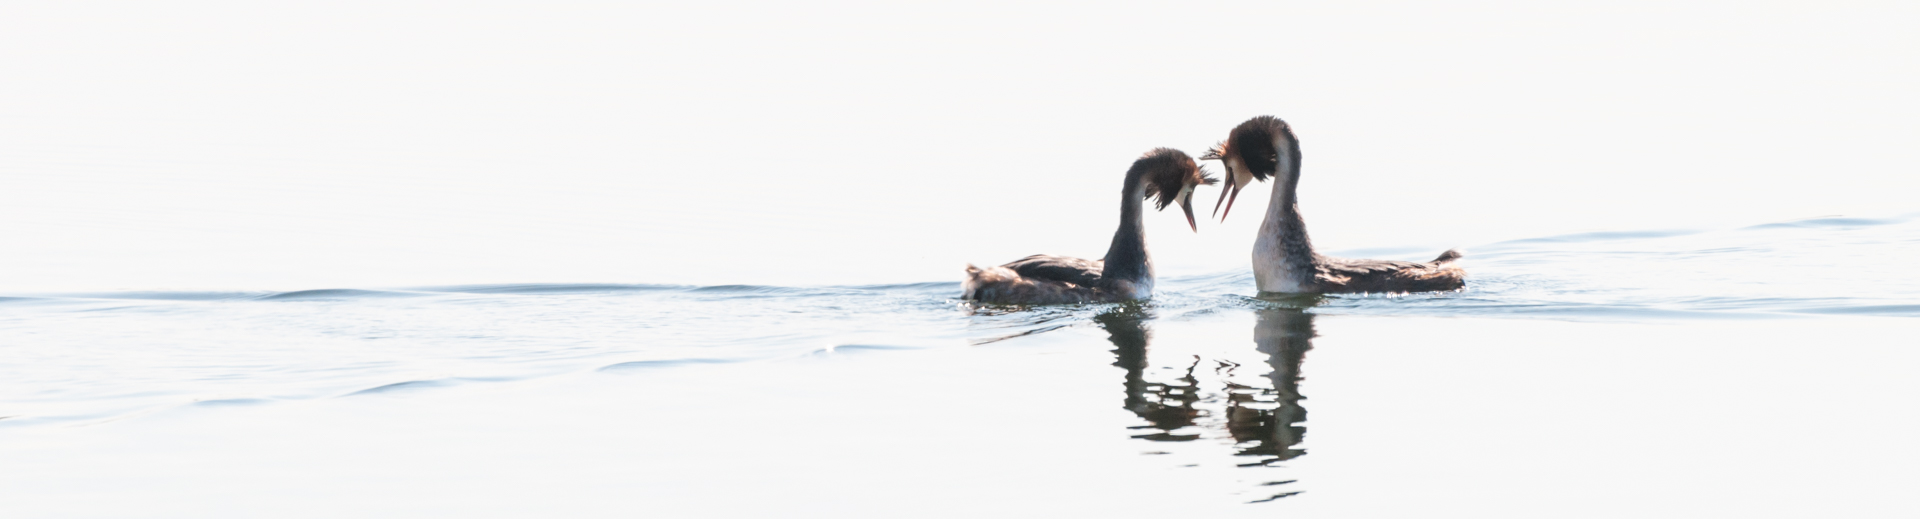 Contact between two grebes